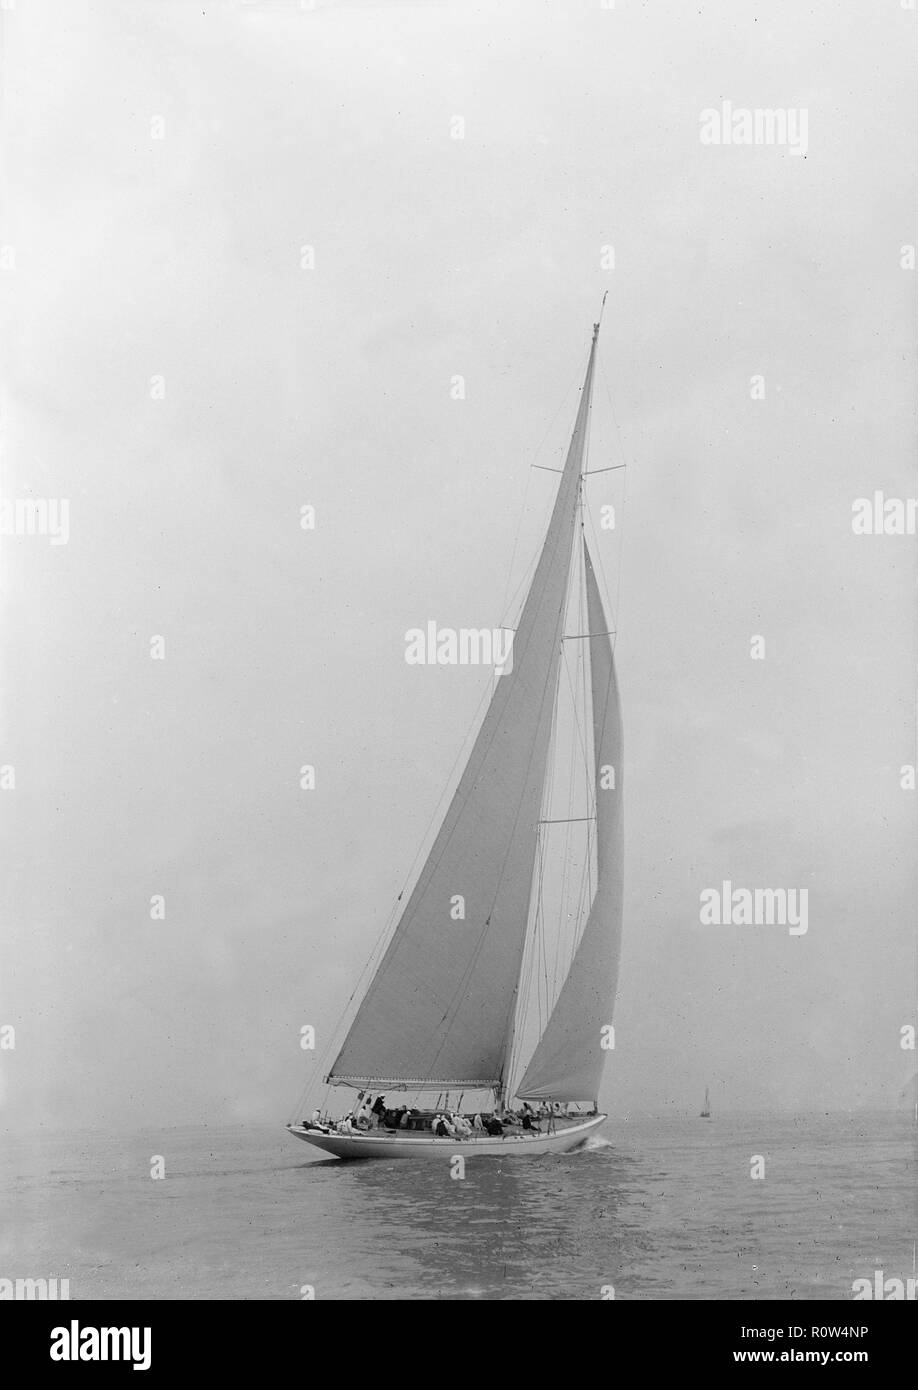 The American J-Class yacht 'Yankee', 1935. In 1935 Gerry Lambert bought the Frank Paine designed 'Yankee' to England to race against the British J-Class yachts 'Endeavour', 'Velsheda', 'Candida', 'Astra' and 'Shamrock V'. She took eight first-place finishes in 32 races. - Stock Image